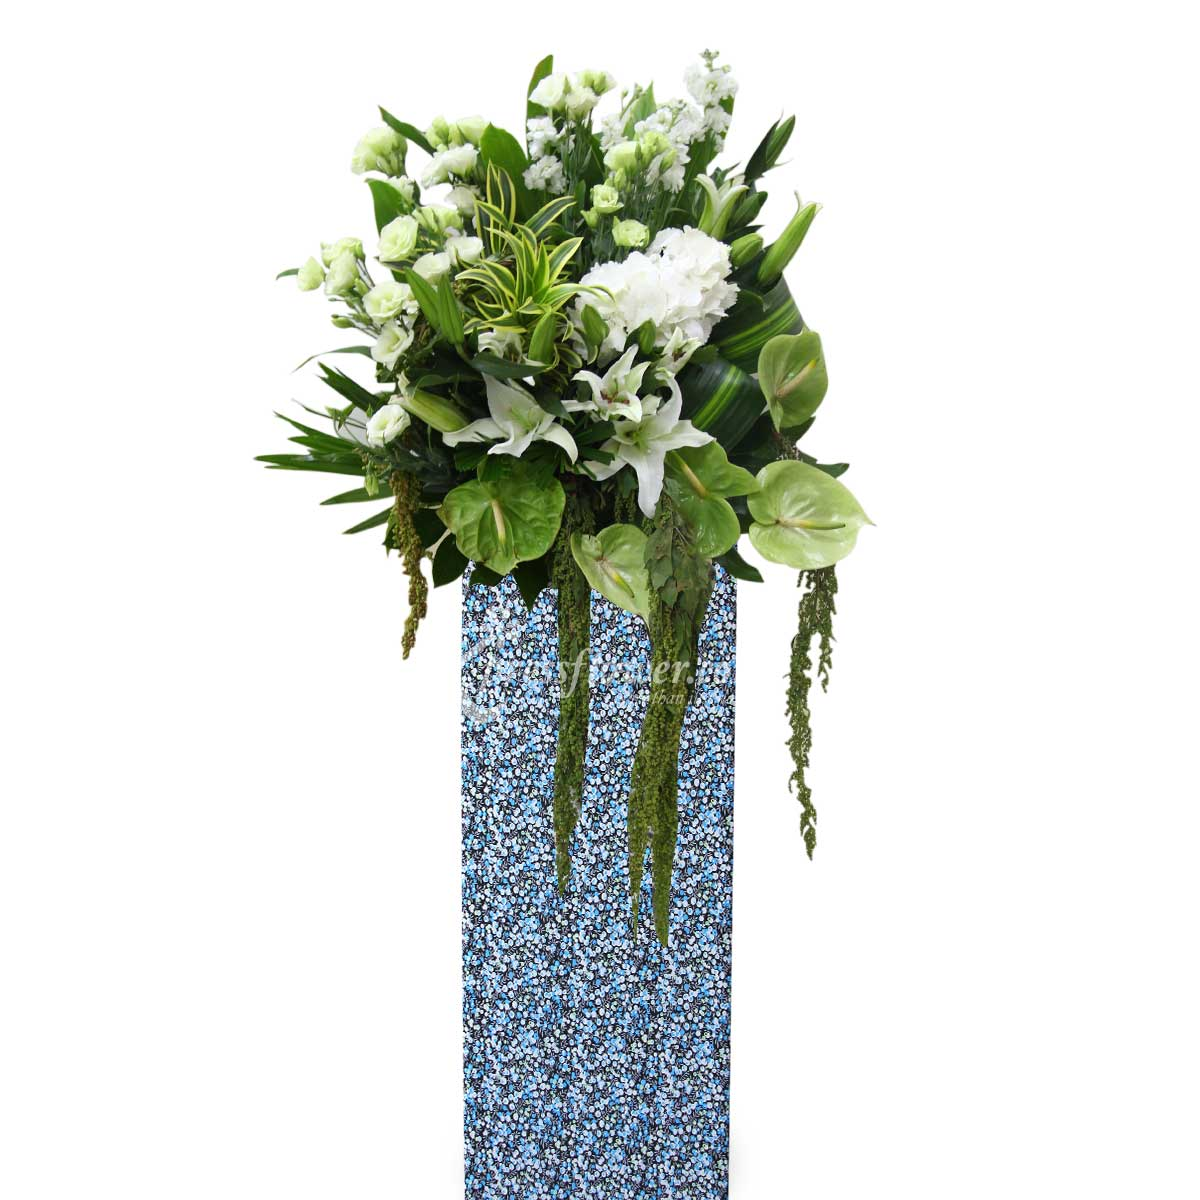 SC1602 Saccharine Wreath Funeral & Condolence Flower Stands